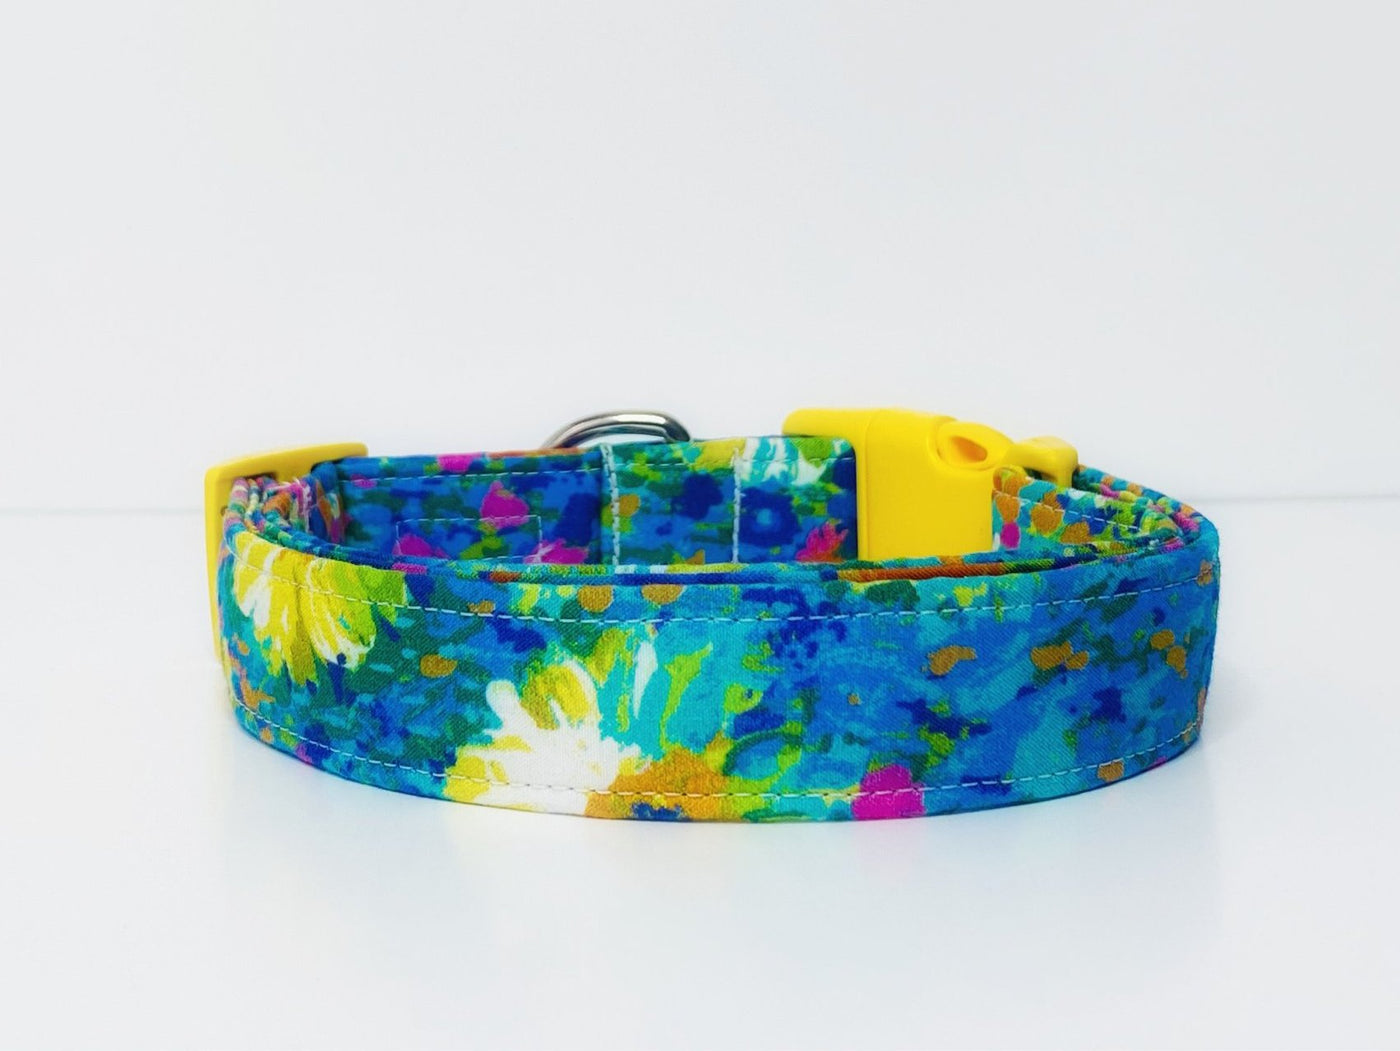 The Gogh Floral Dog Collar